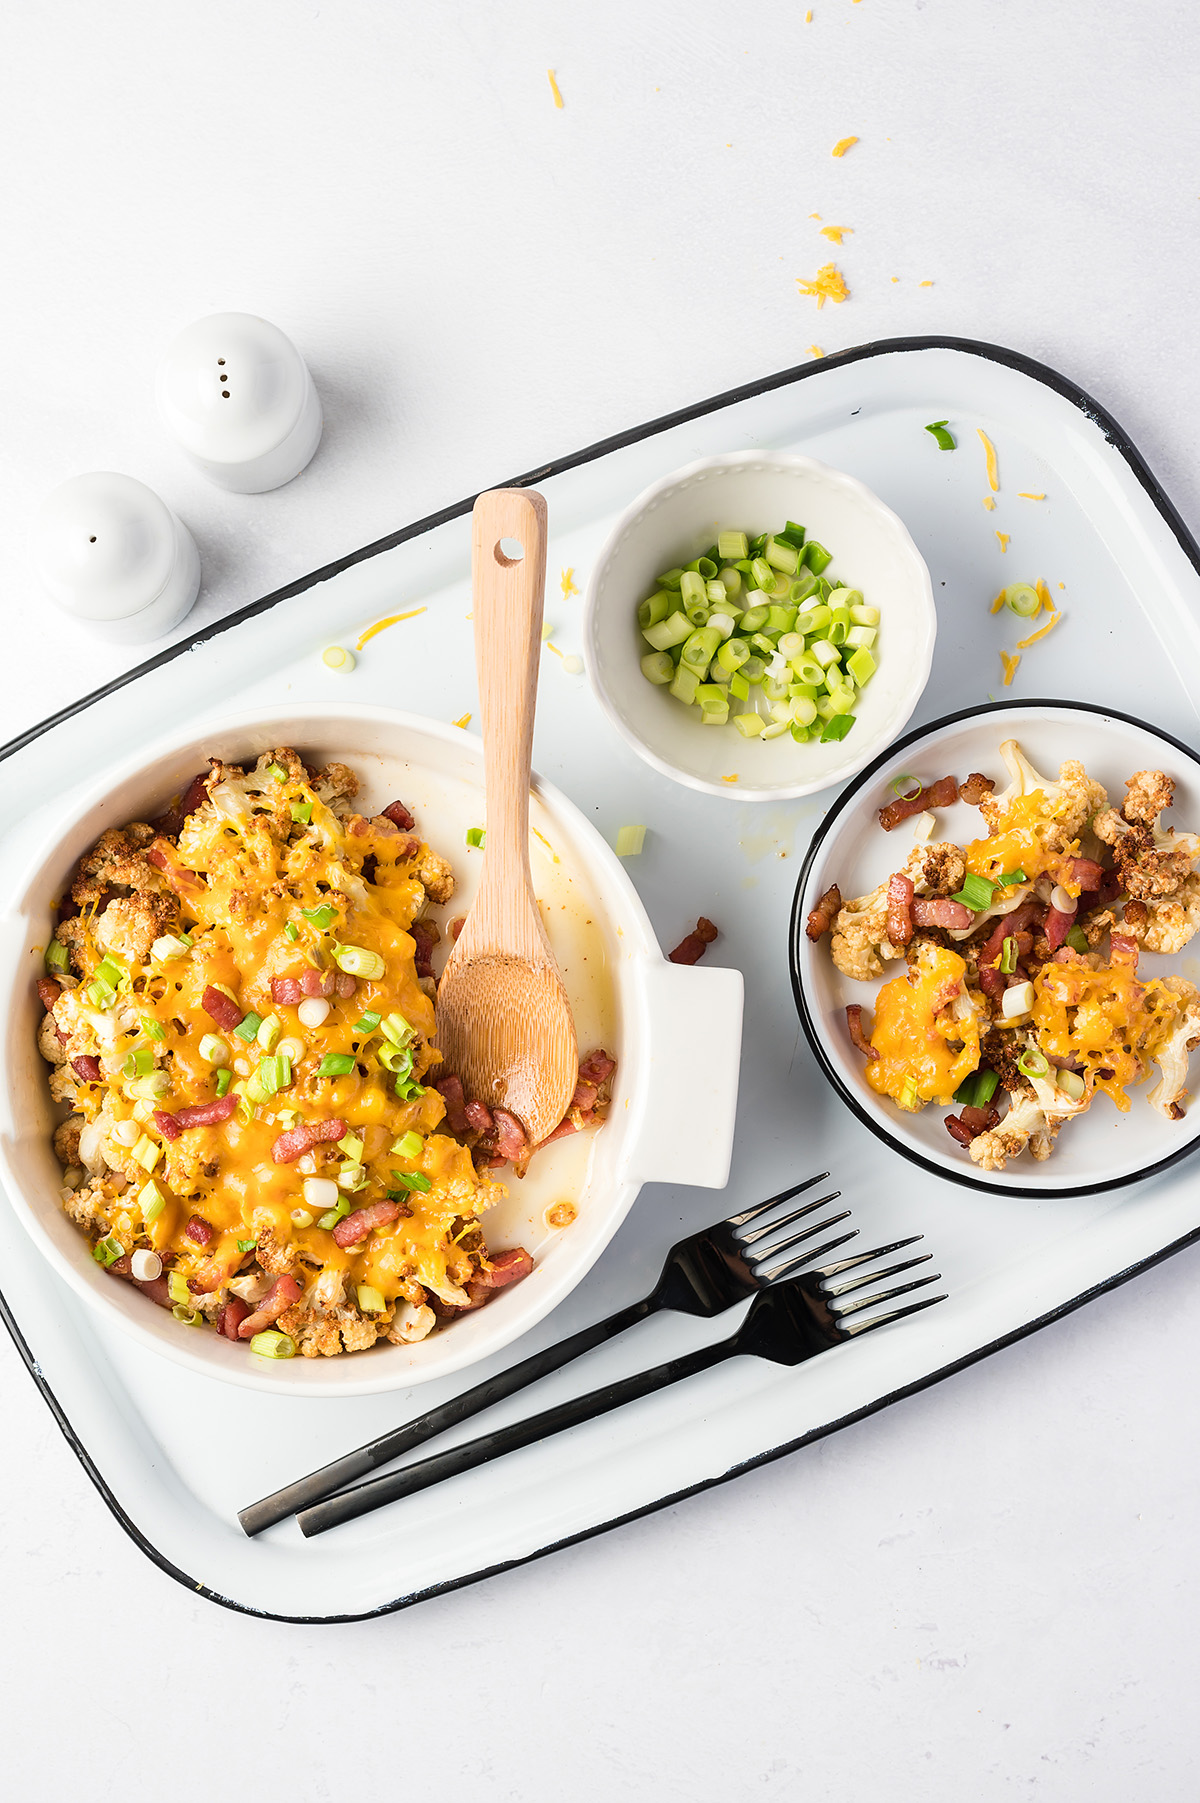 Overhead view of a serving tray with loaded cauliflower and two forks on it